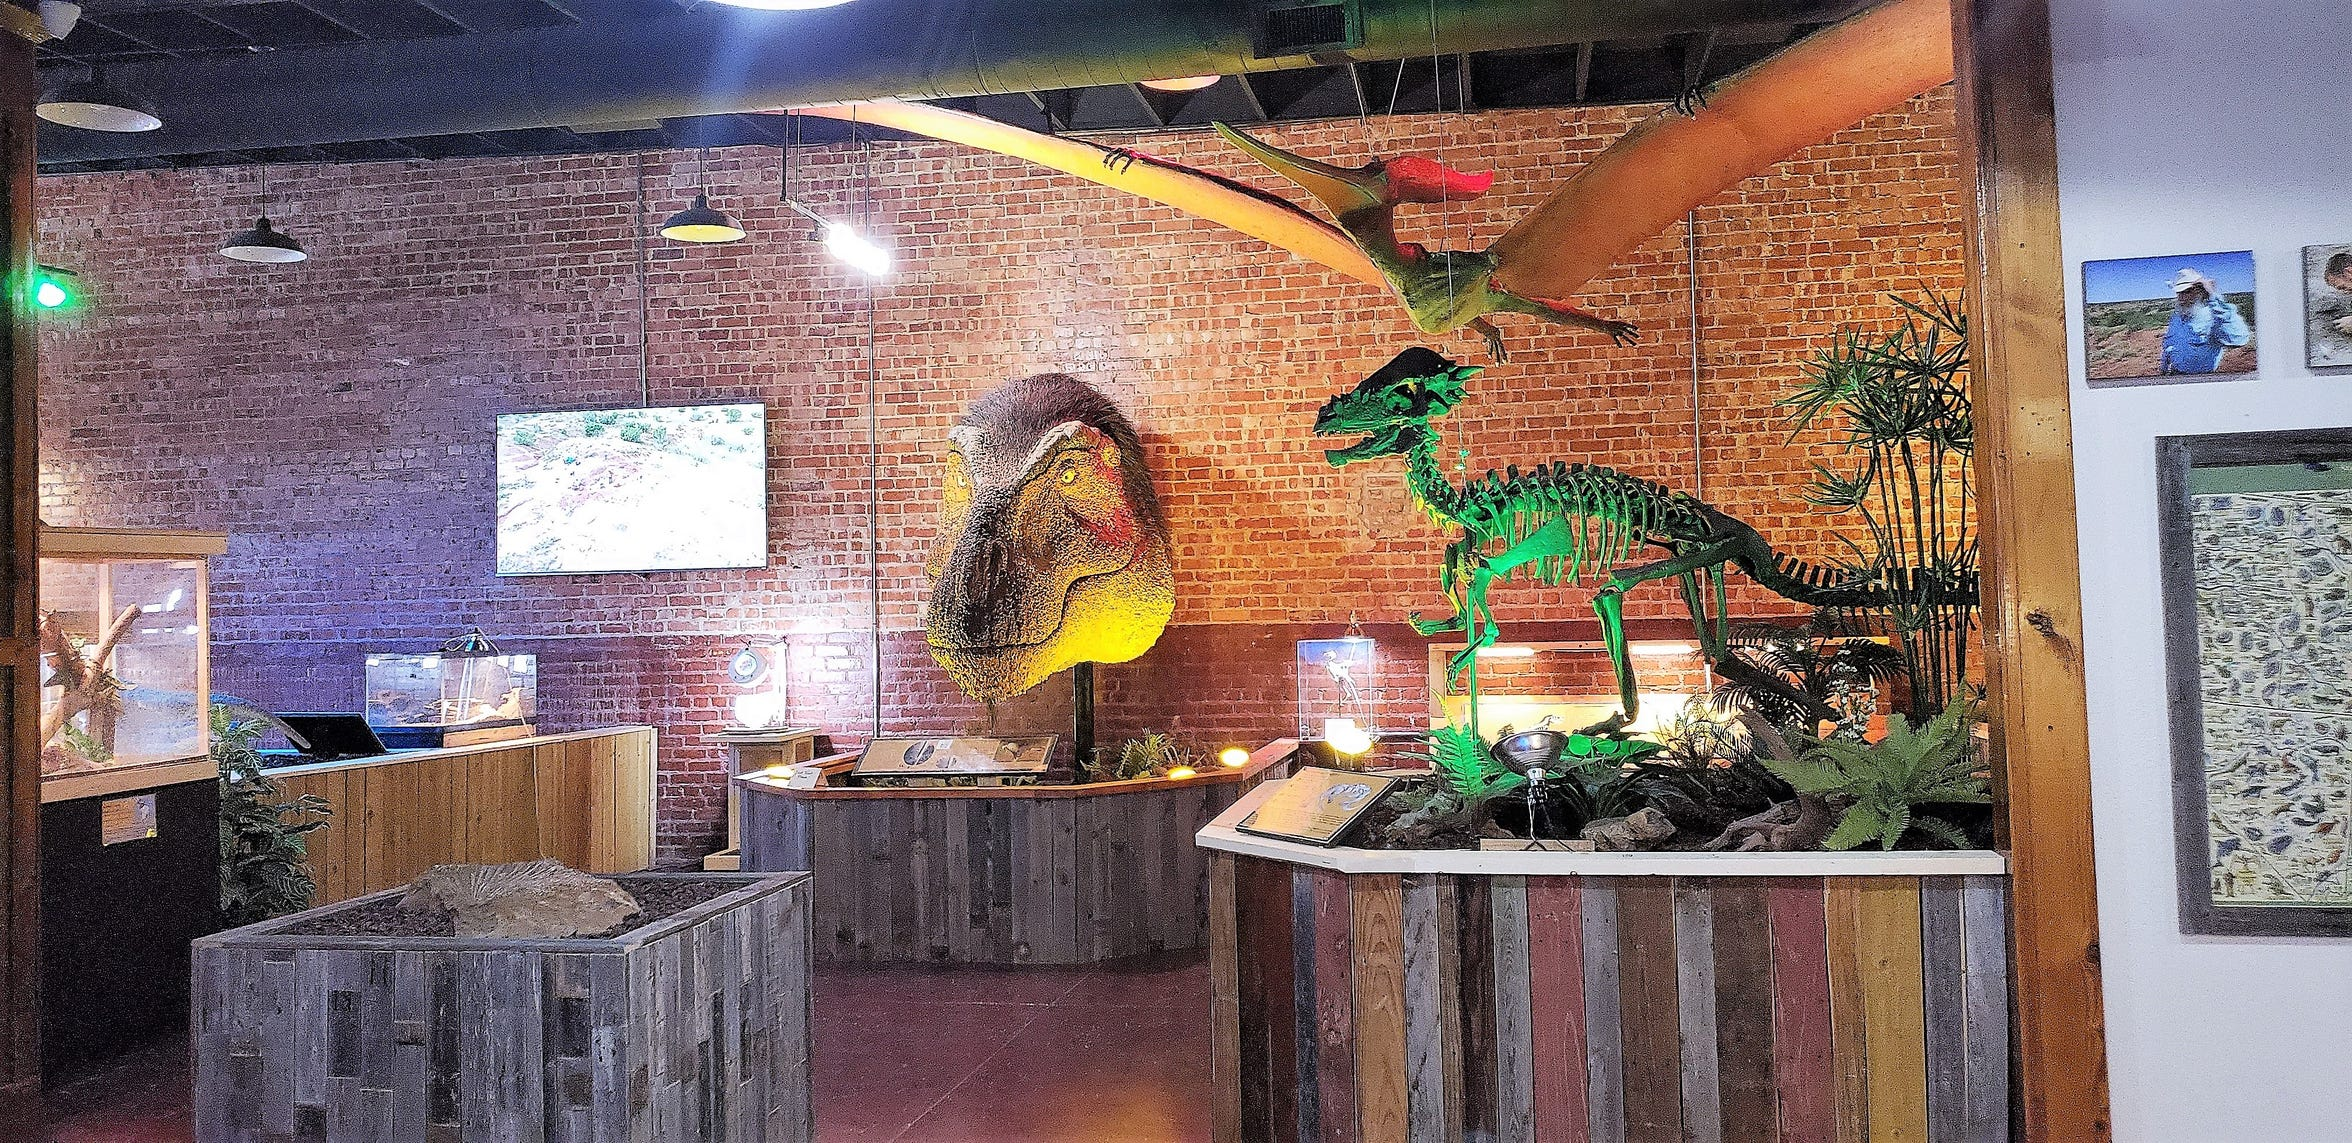 The museum features some familiar dinosaurs as part of its exhibits which were not from the Permian. The dramatically-lit green specimen, for example, is a pachycephalosaurus, which lived 70-66 million years ago, as opposed to the 290 million years ago of the Permian.